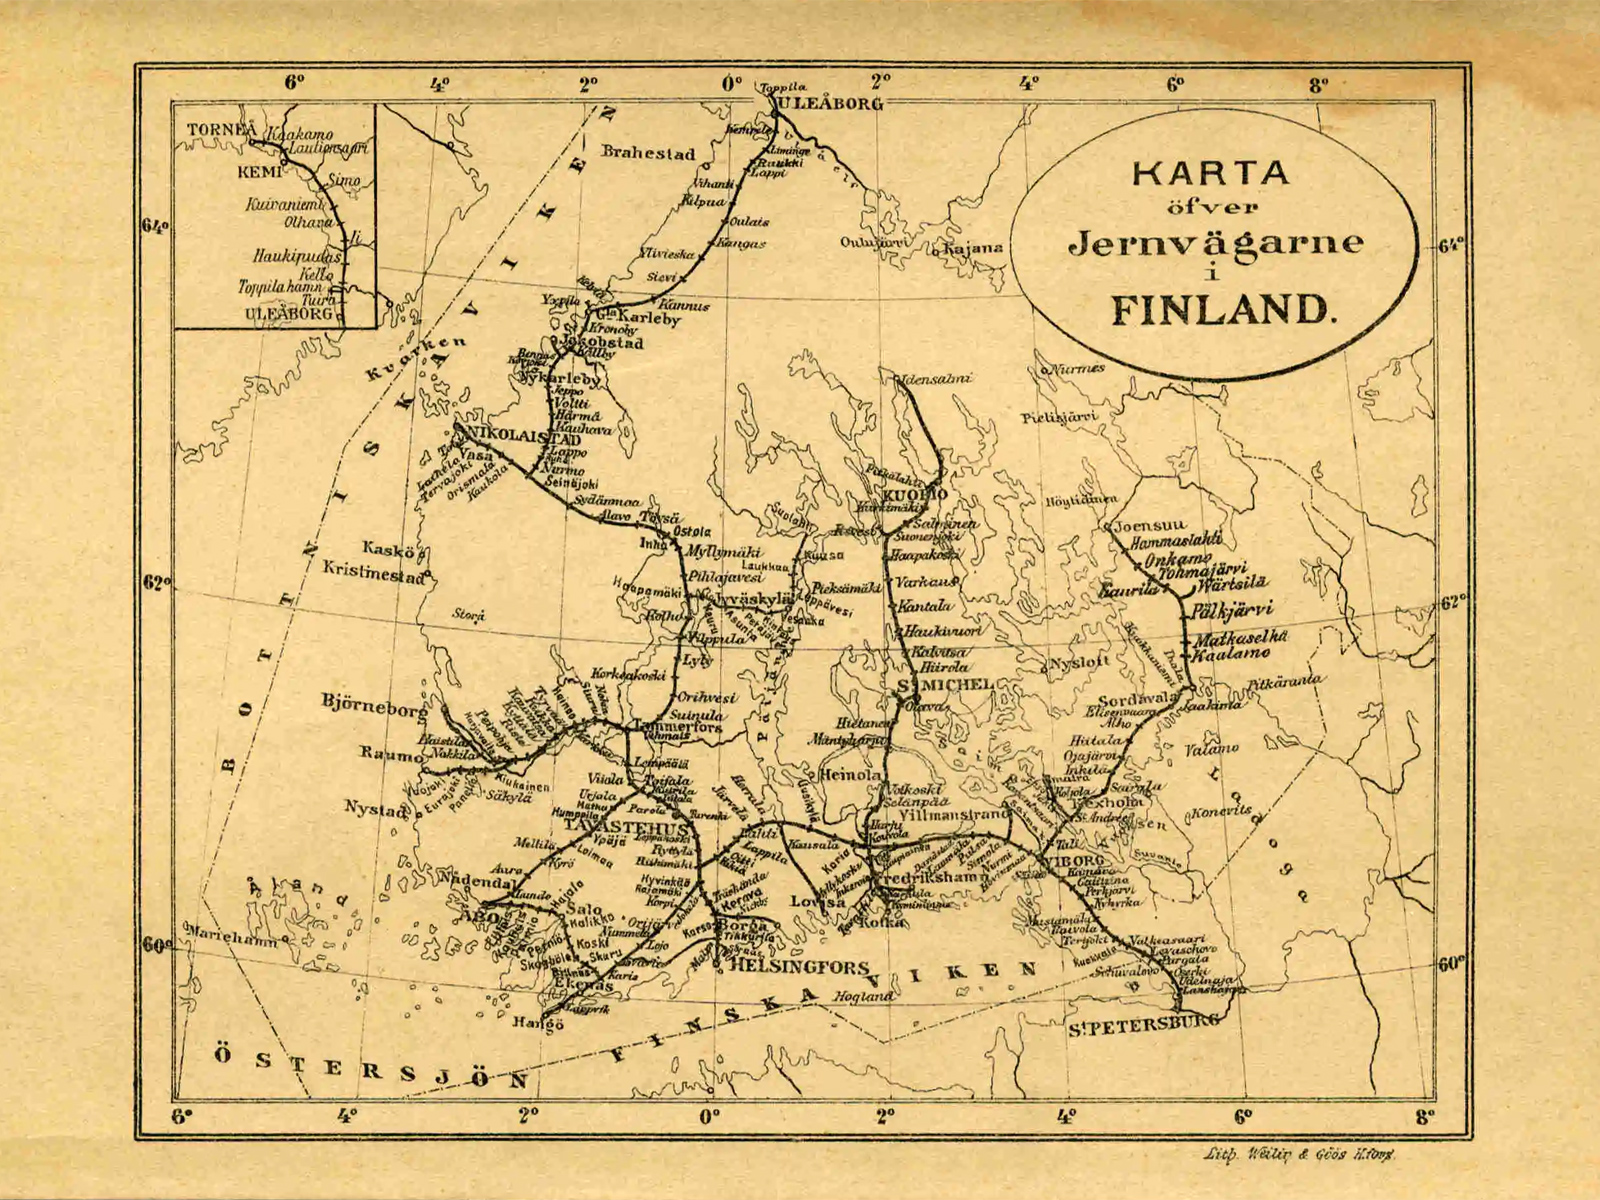 1900's. The Finnish railway map